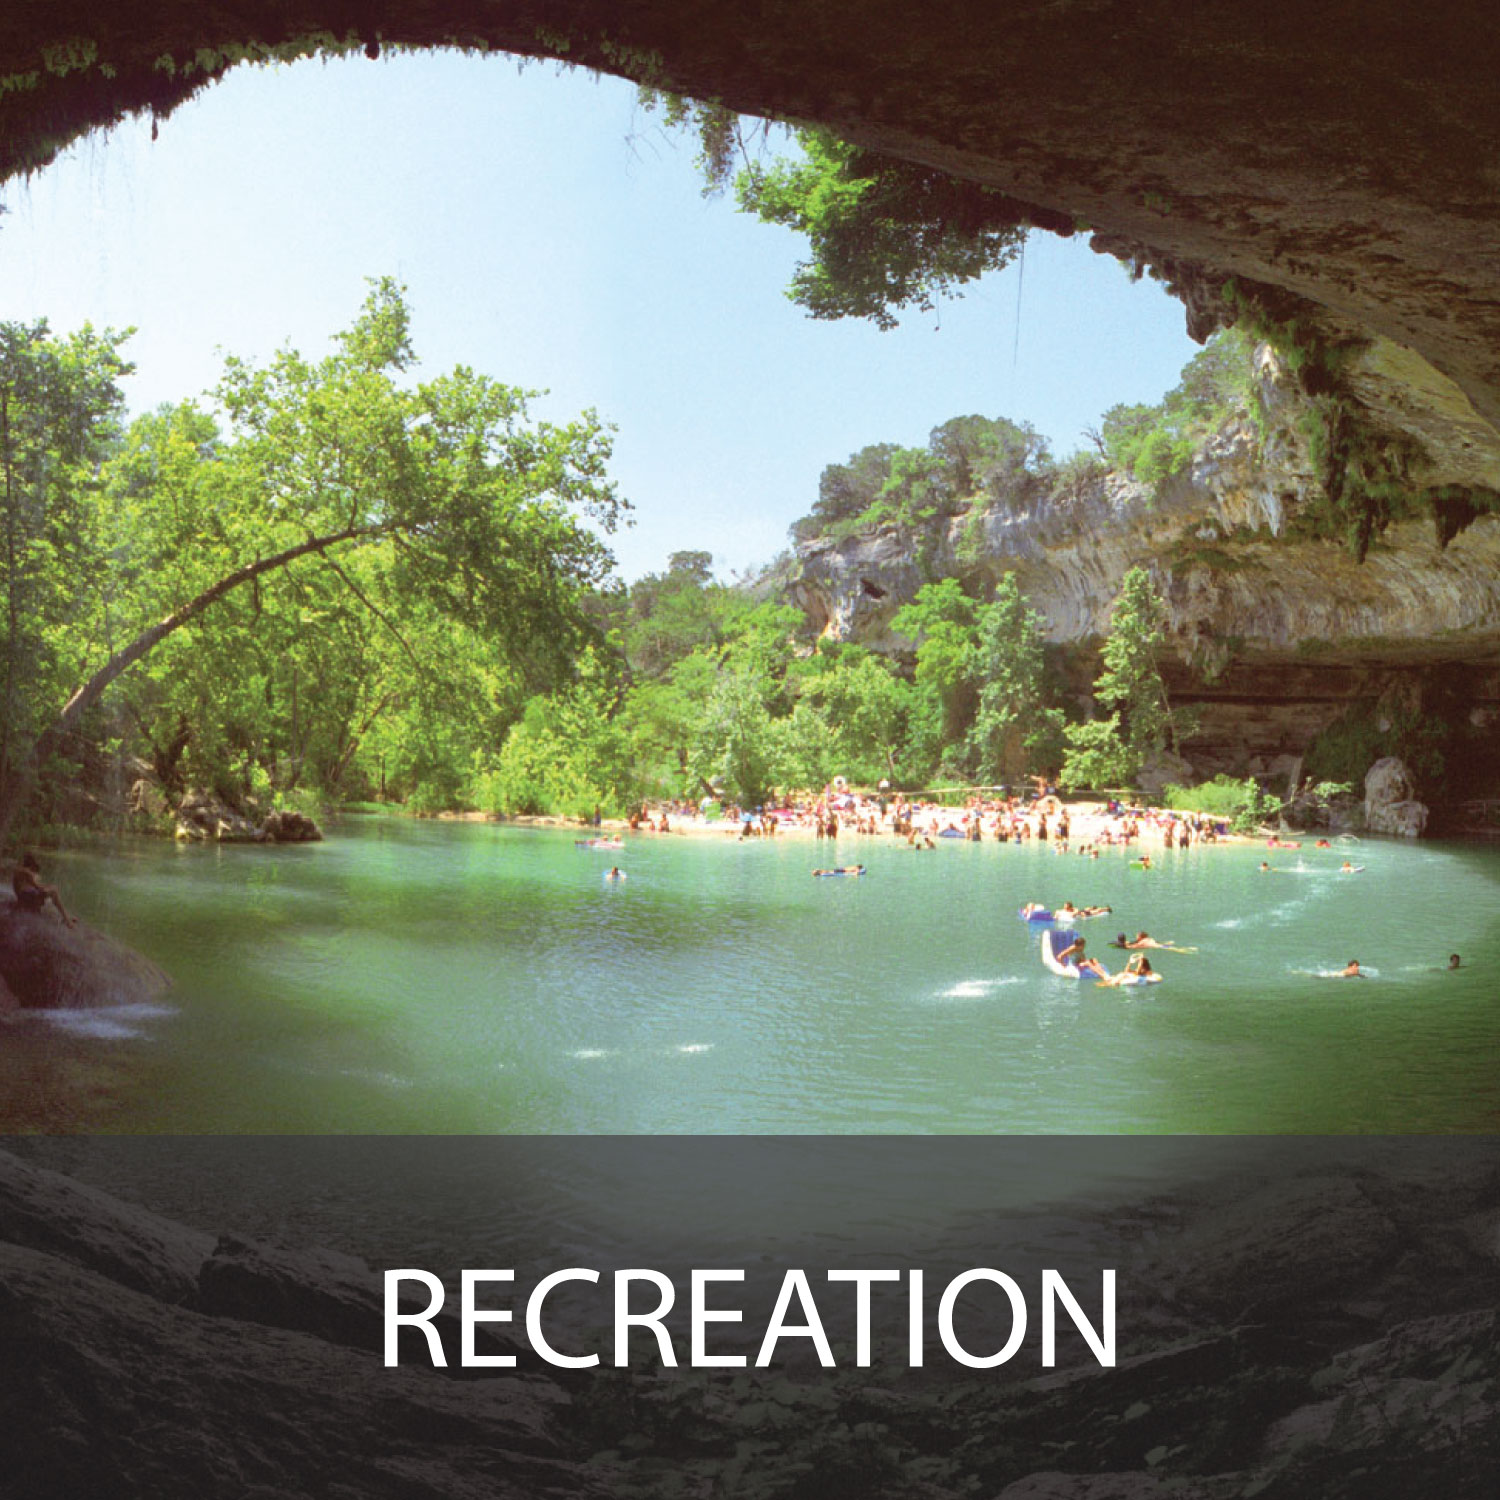 Austin Area Recreation